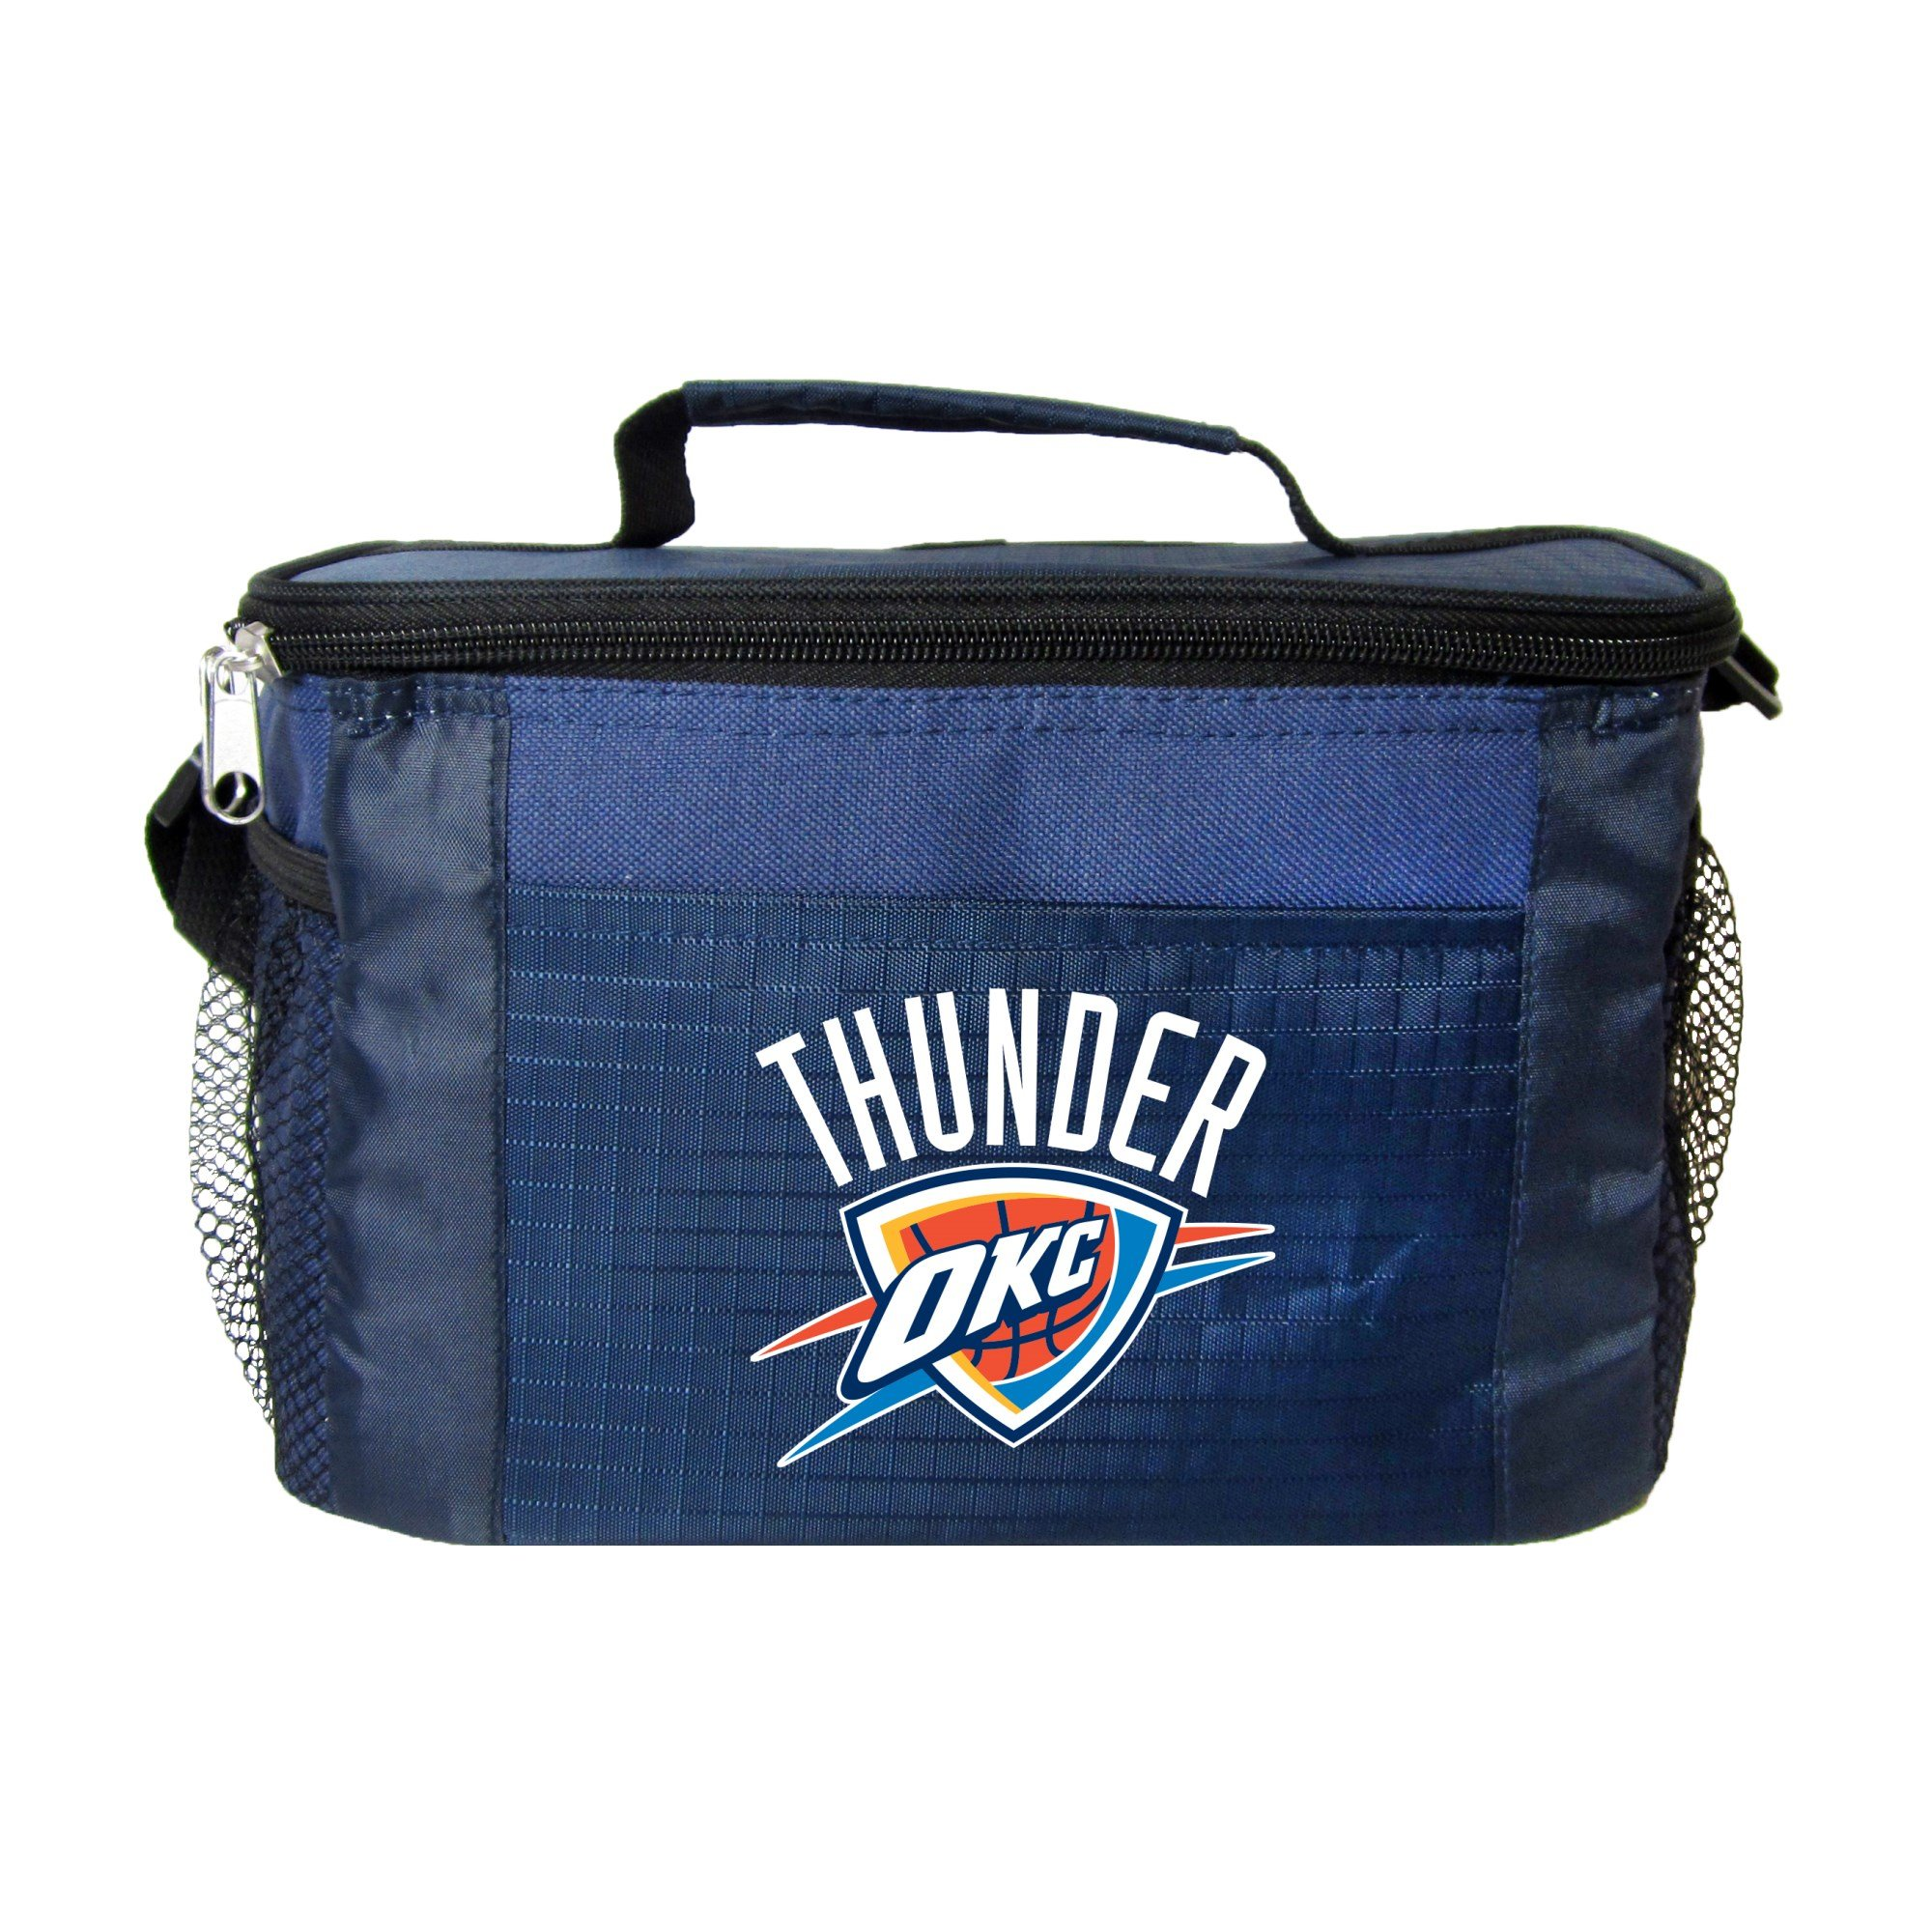 NBA Oklahoma City Thunder Insulated Lunch Cooler Bag with Zipper Closure, Navy